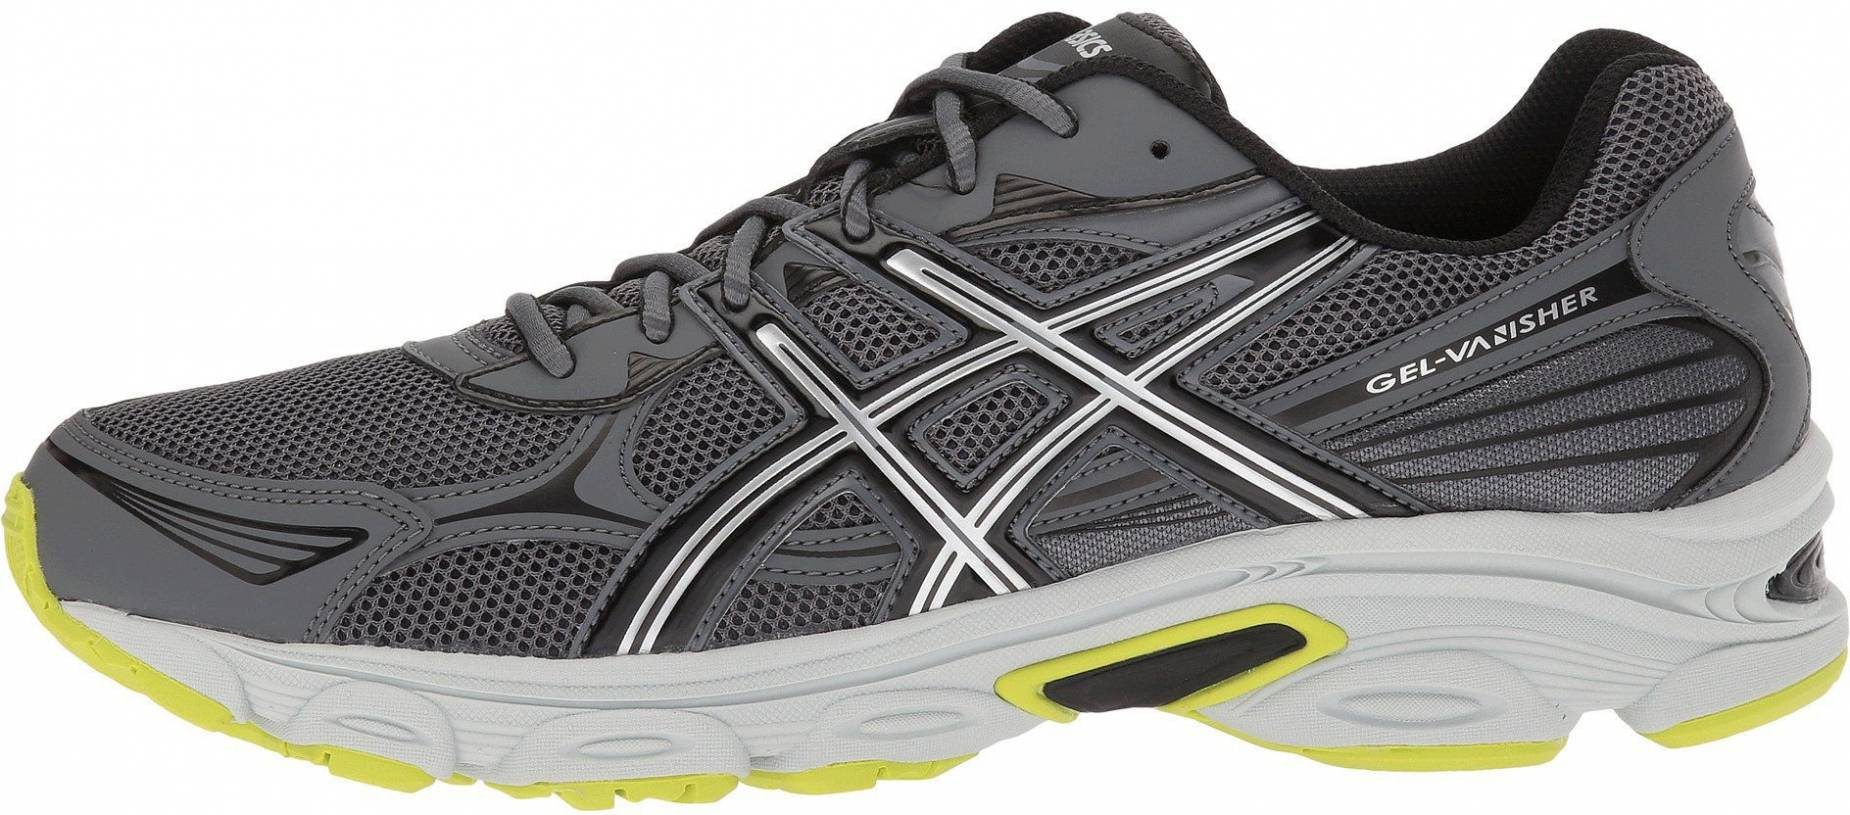 Only $36 + Review of Asics Gel Vanisher